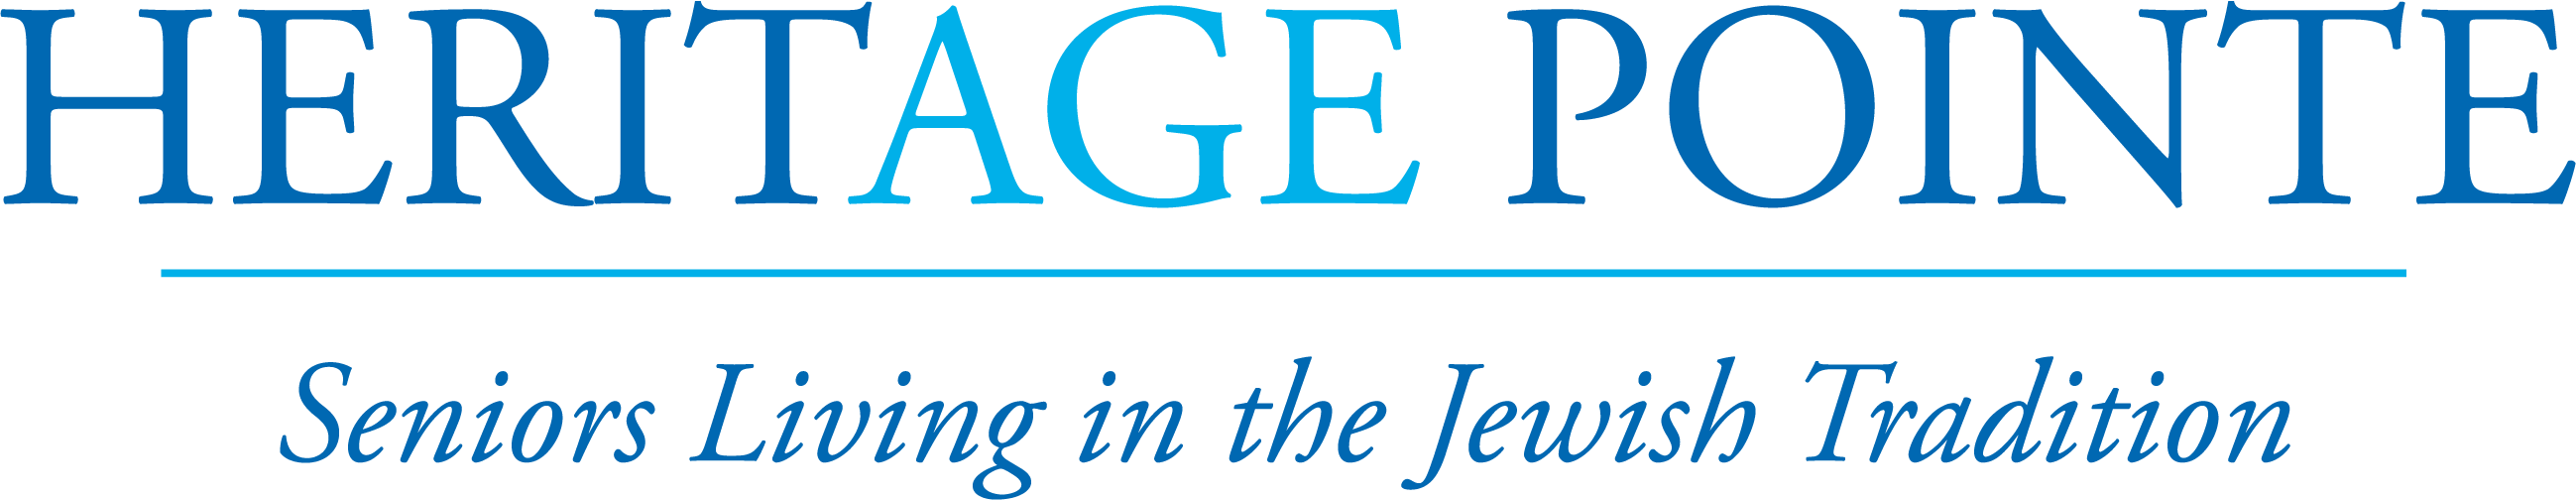 heritage pointe logo in dark blue age in light blue